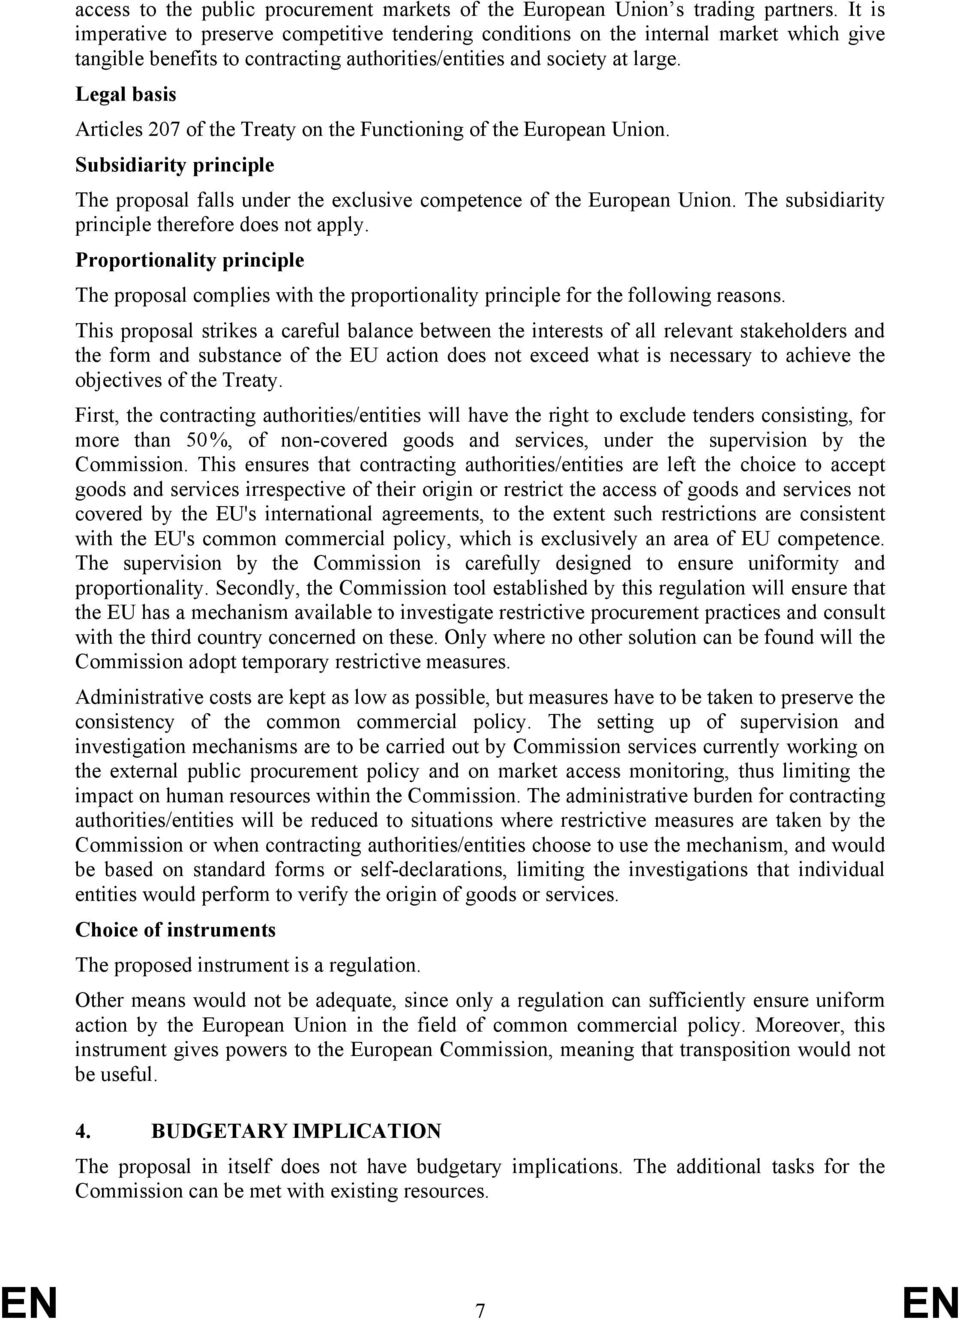 Legal basis Articles 207 of the Treaty on the Functioning of the European Union. Subsidiarity principle The proposal falls under the exclusive competence of the European Union.